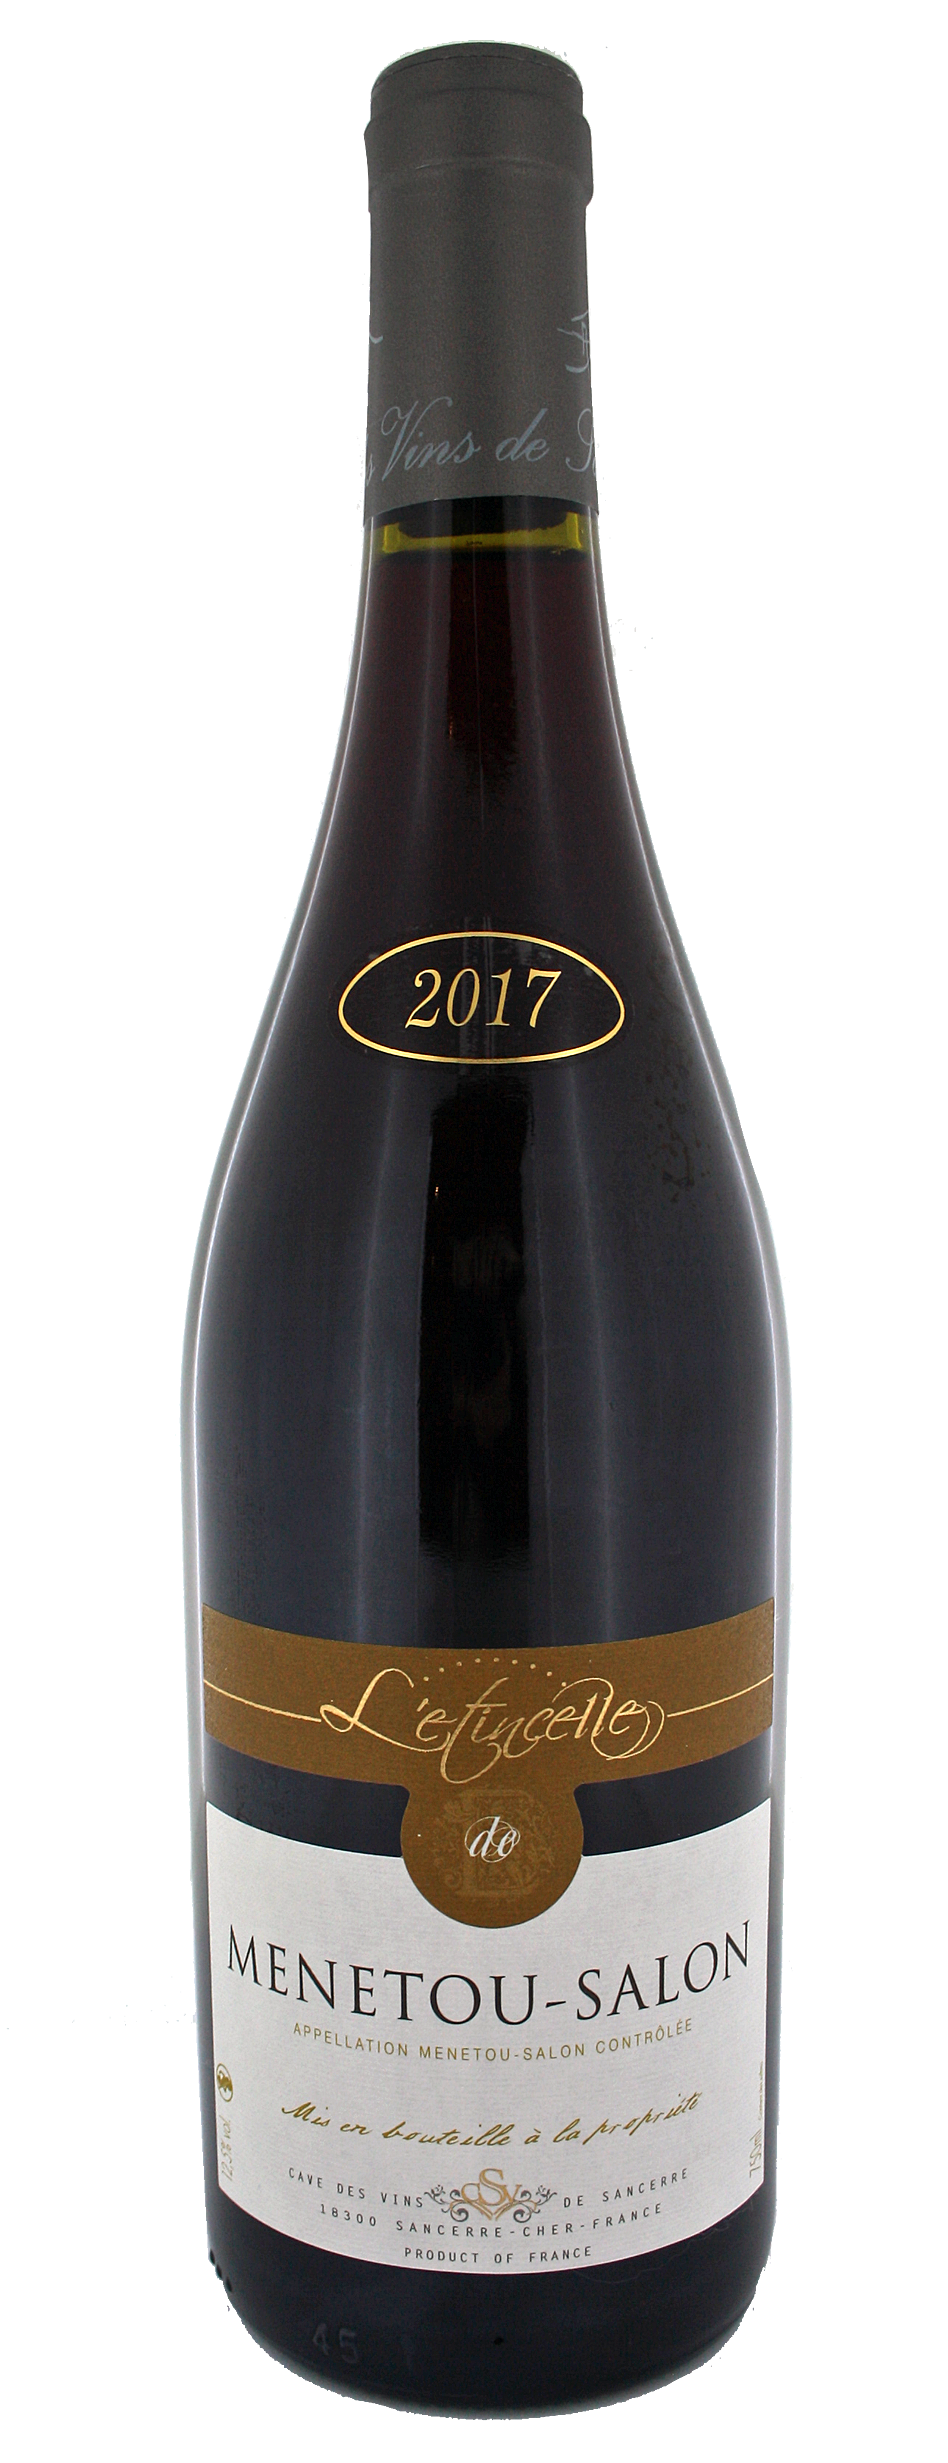 47. ETINCELLE MENETOU SALON 75cl - ROUGE 2017